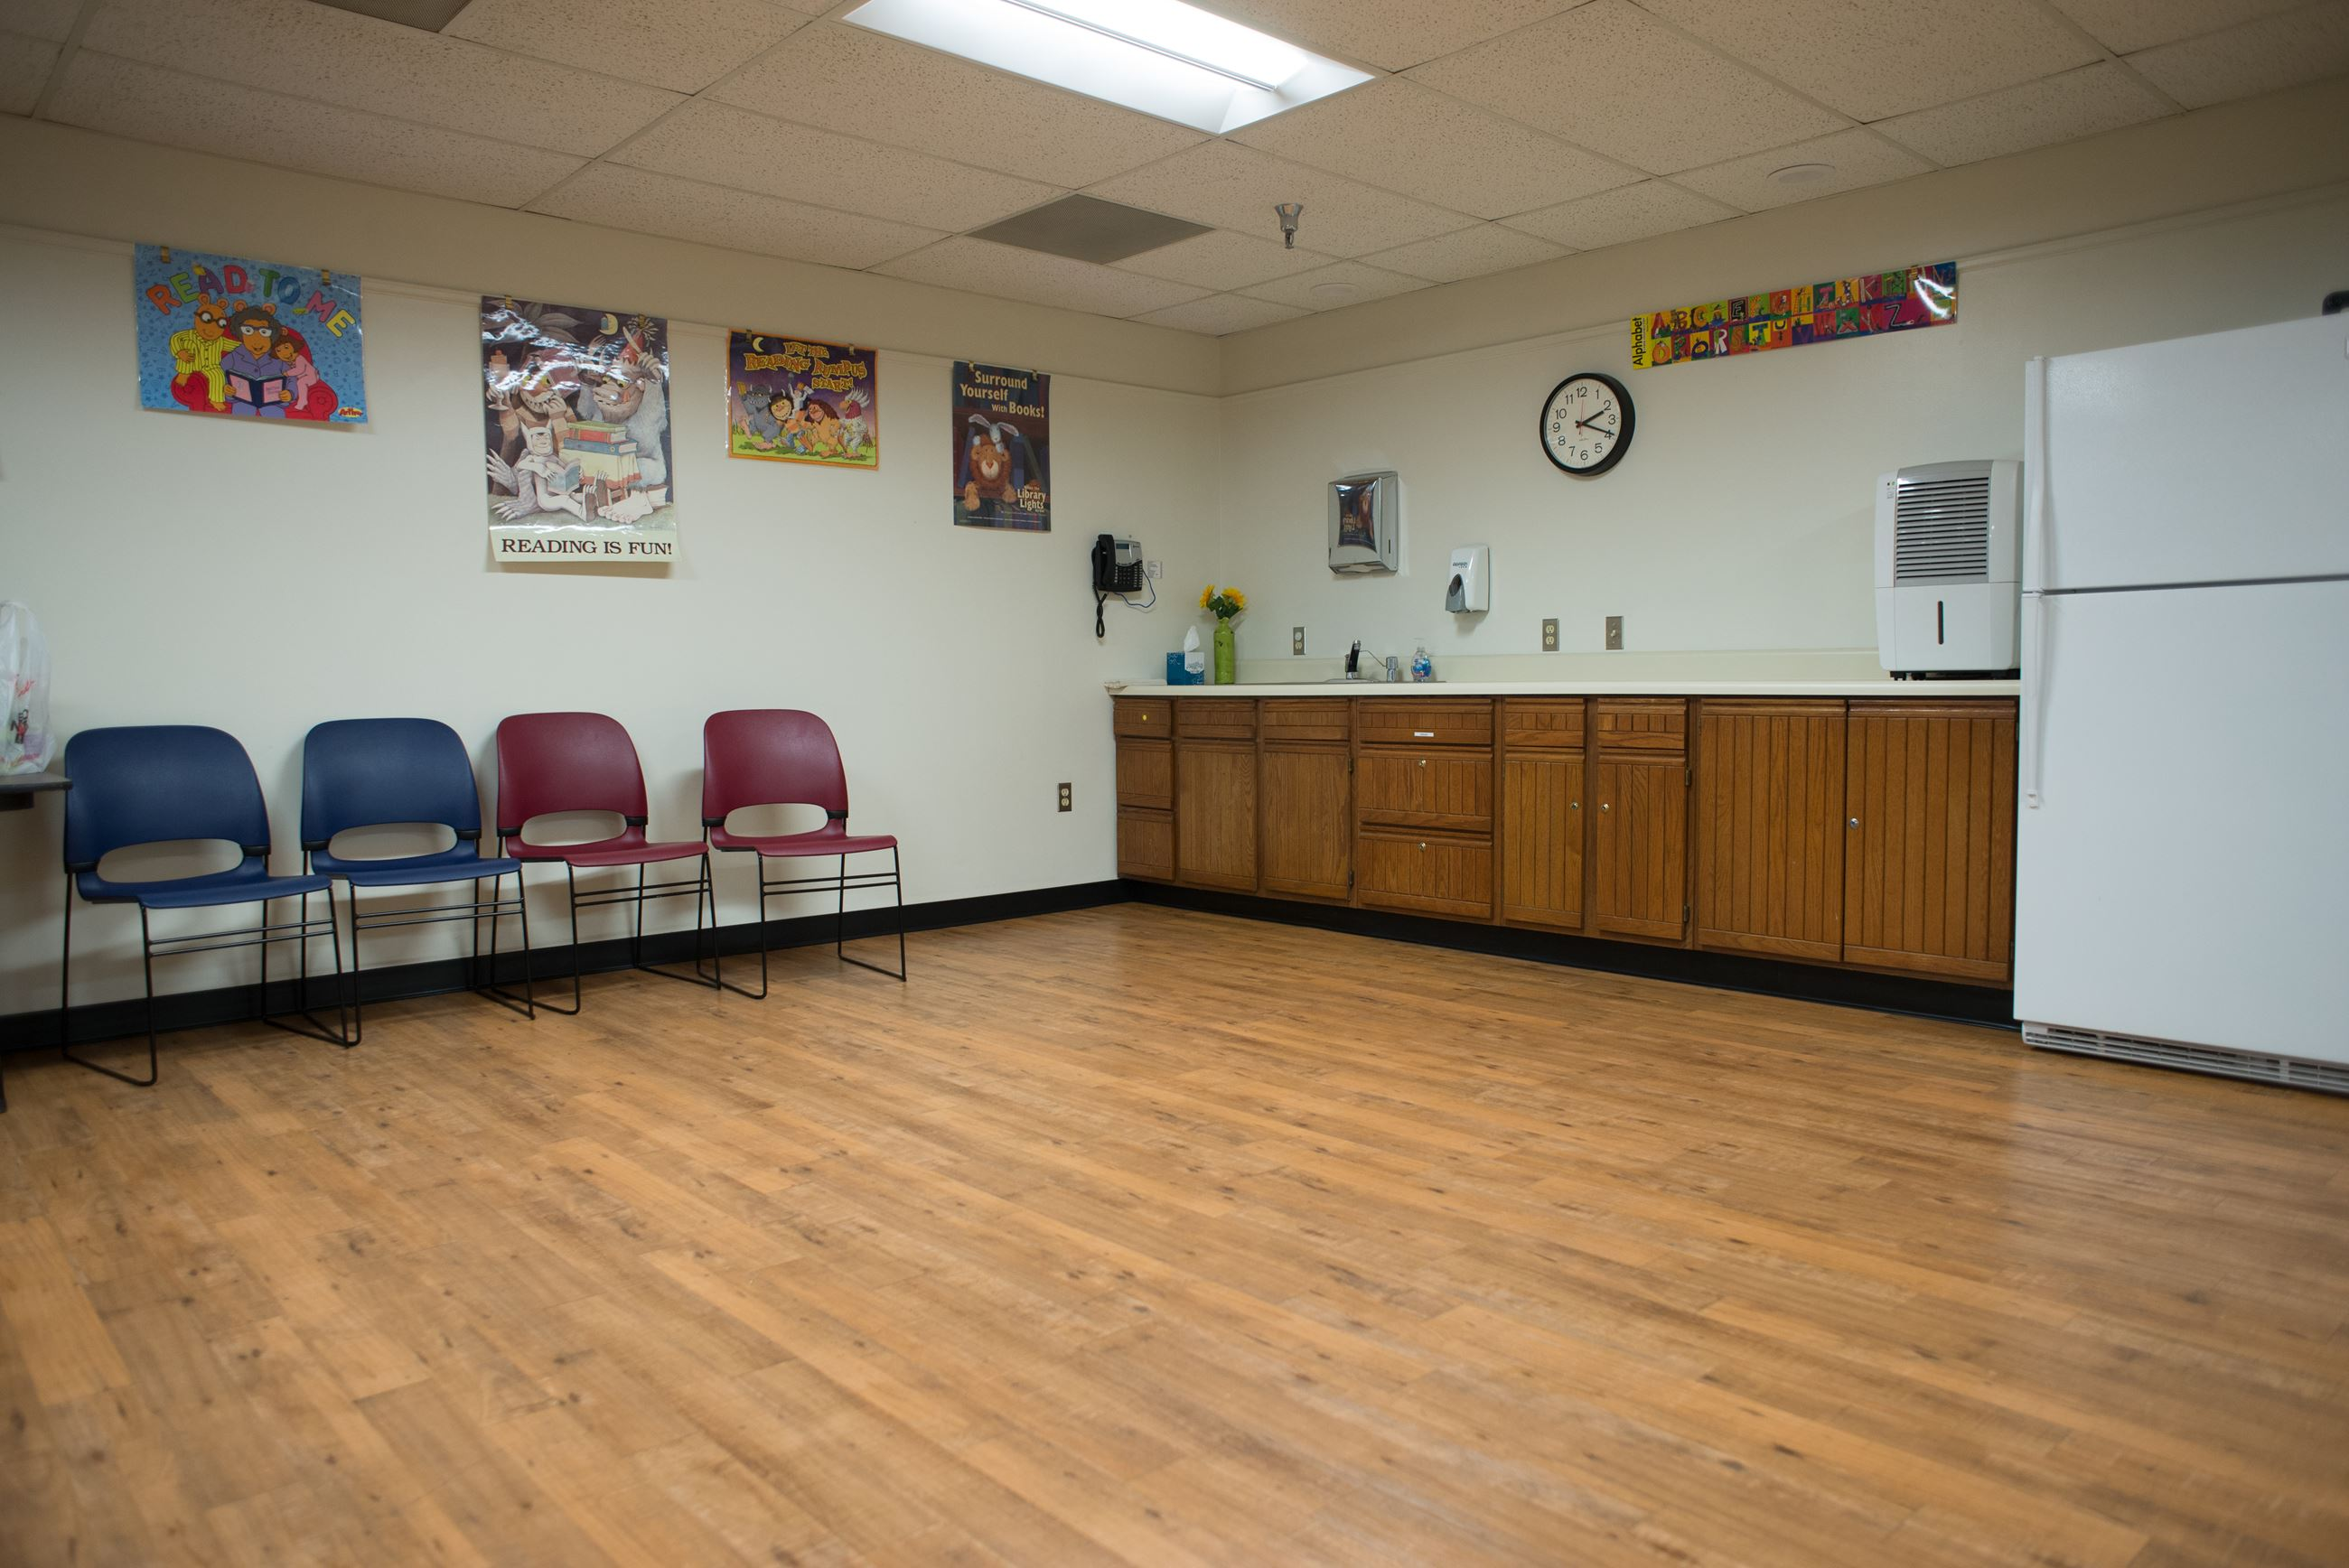 Image of Community Room kitchen area